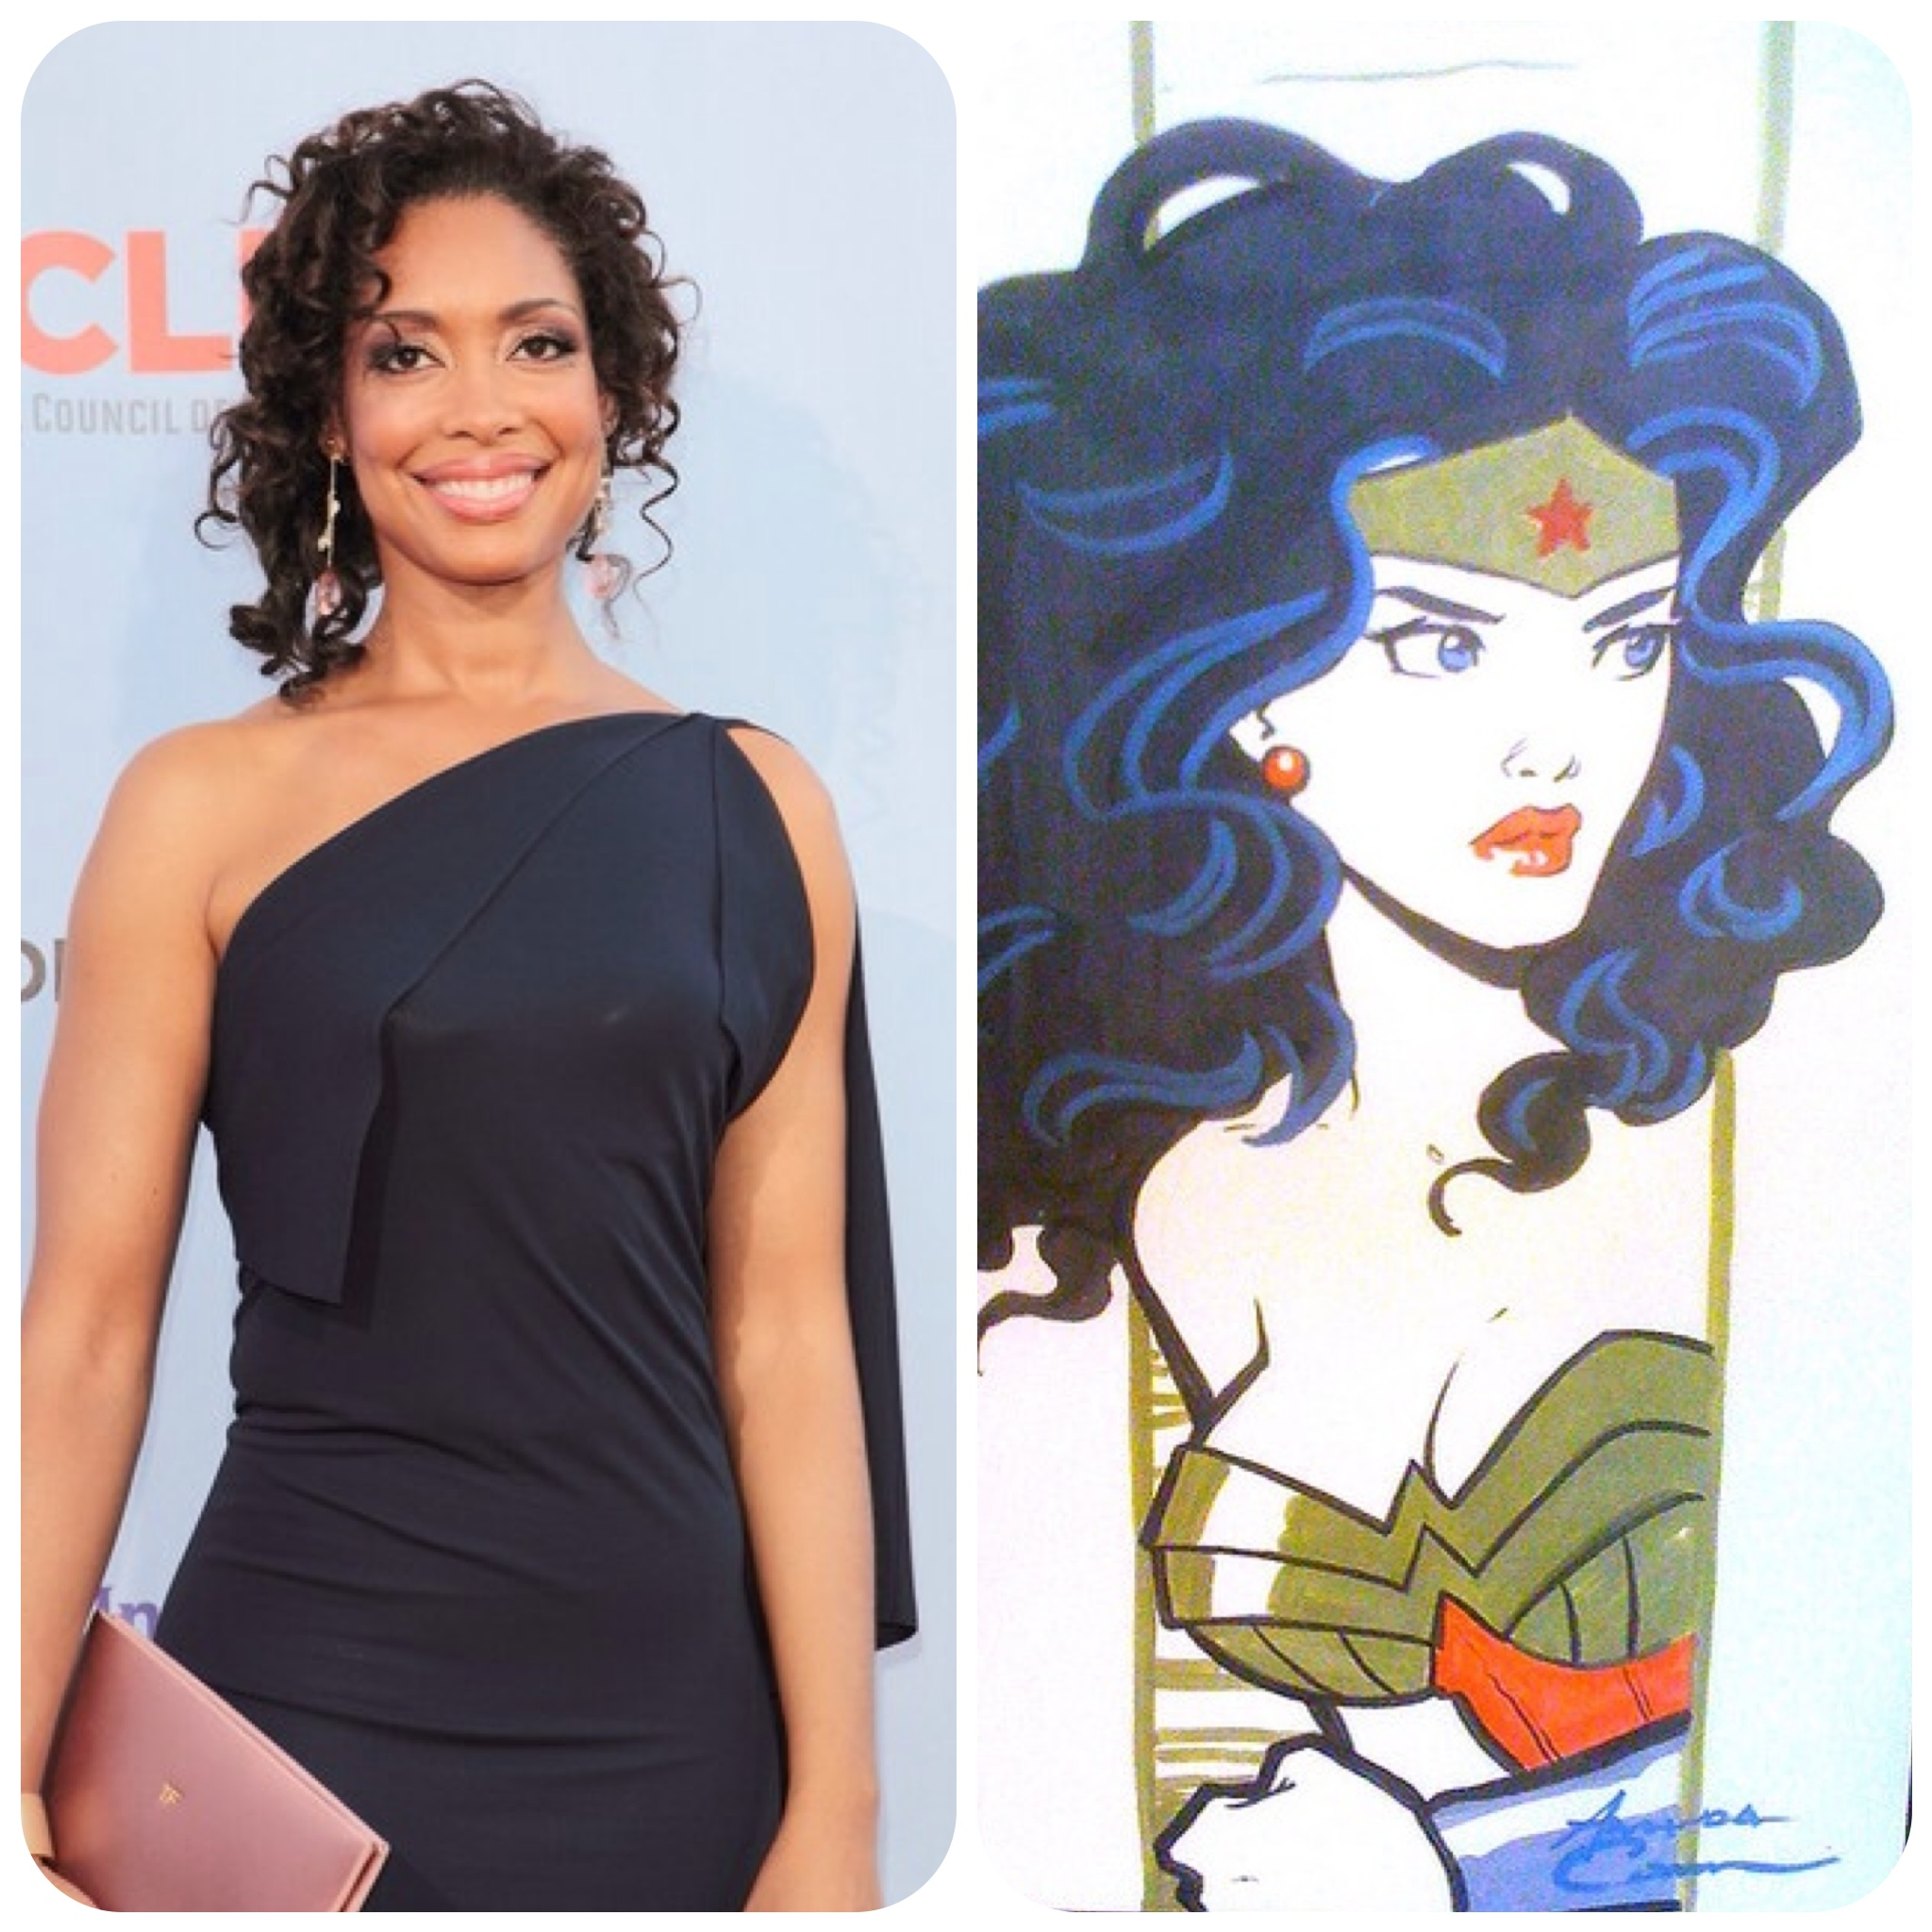 Dreamcasting With Denise Justice League Wonder Woman Diana Prince Gina Torres